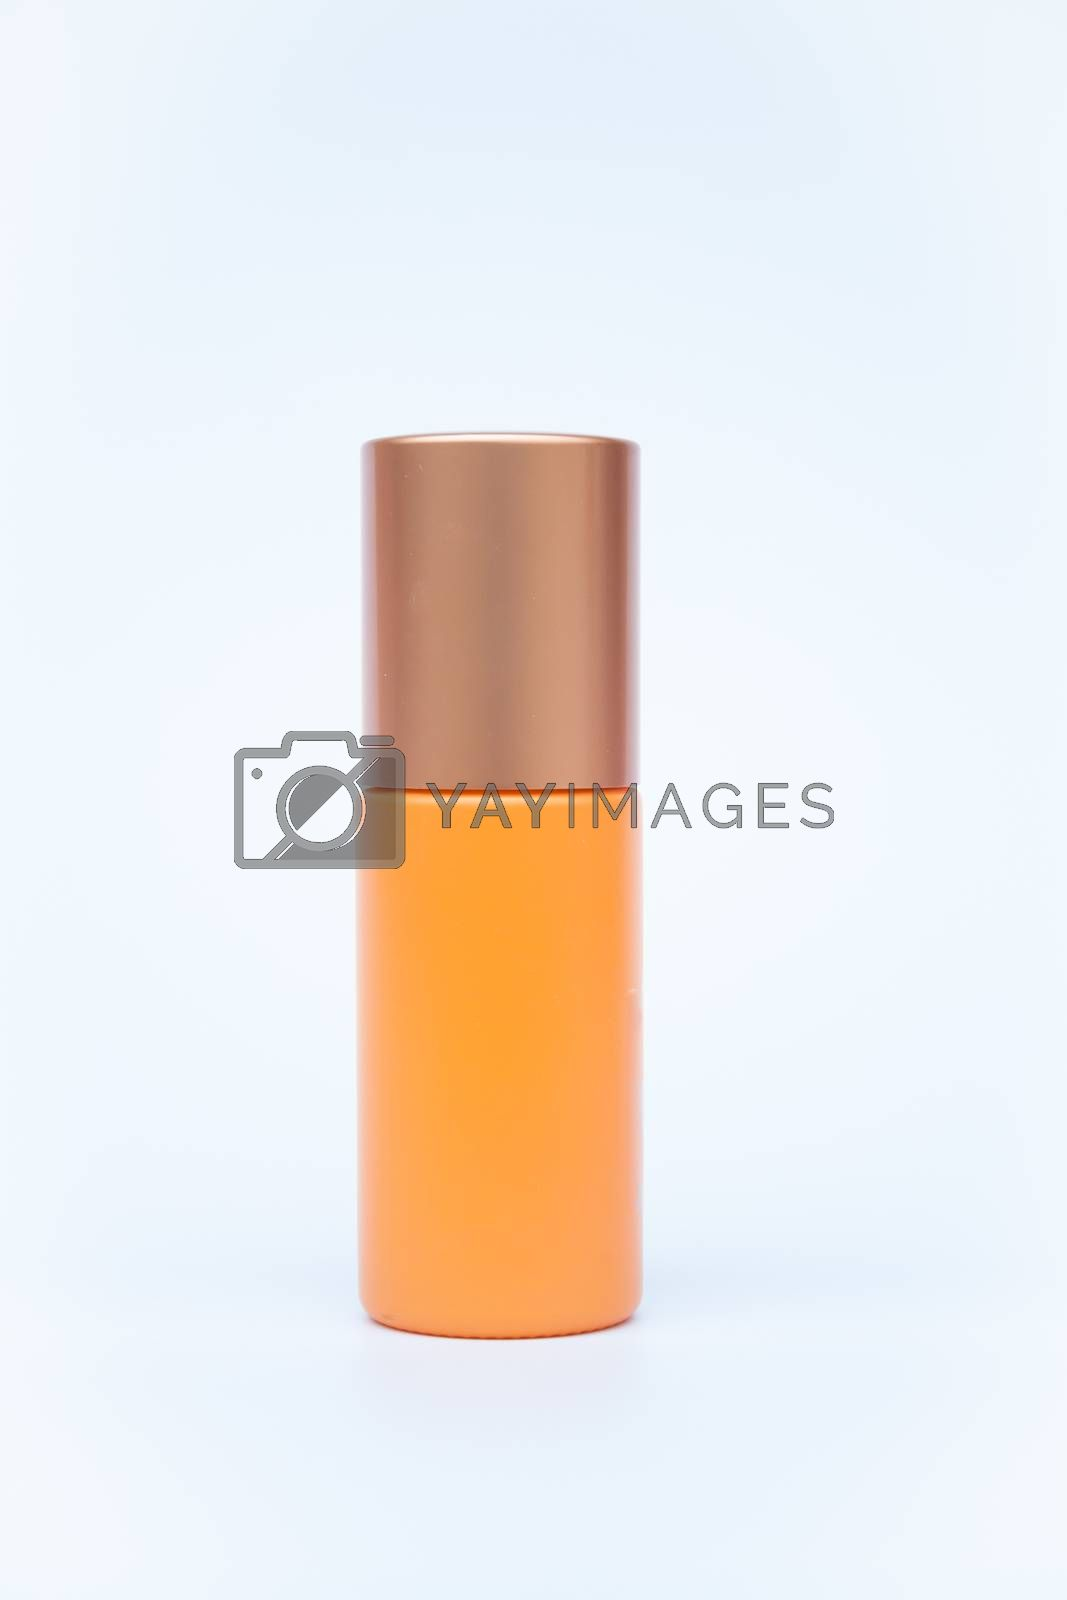 Cosmetic bottle isolated on white background by punsayaporn